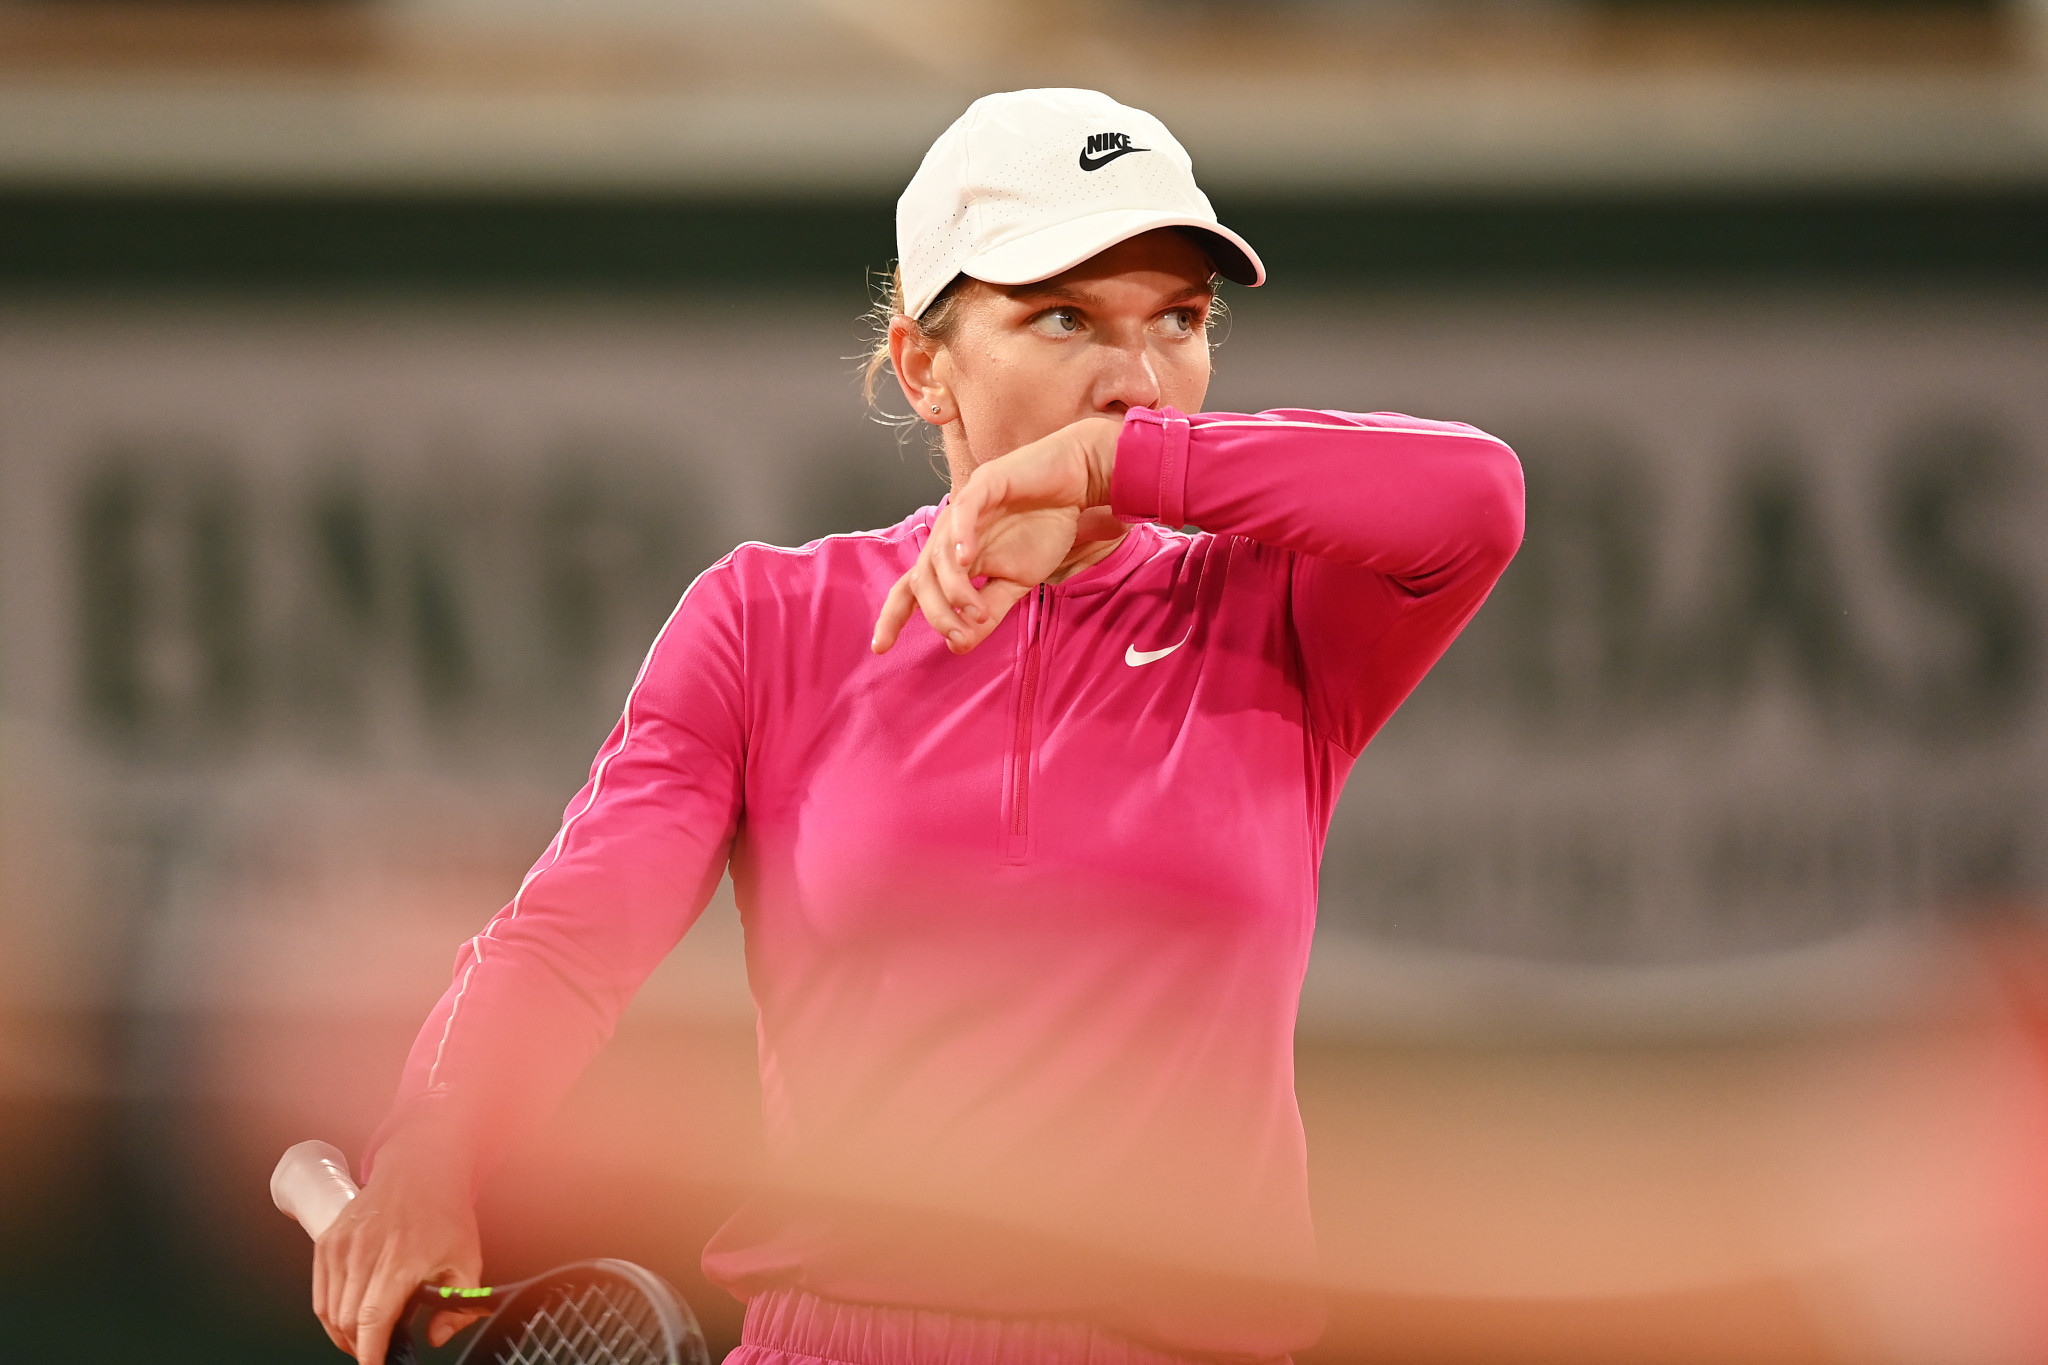 Romania's Simon Halep, the women's top seed, defeated Spain's Sara Sorribes Tormo 6-4, 6-0 ©Getty Images